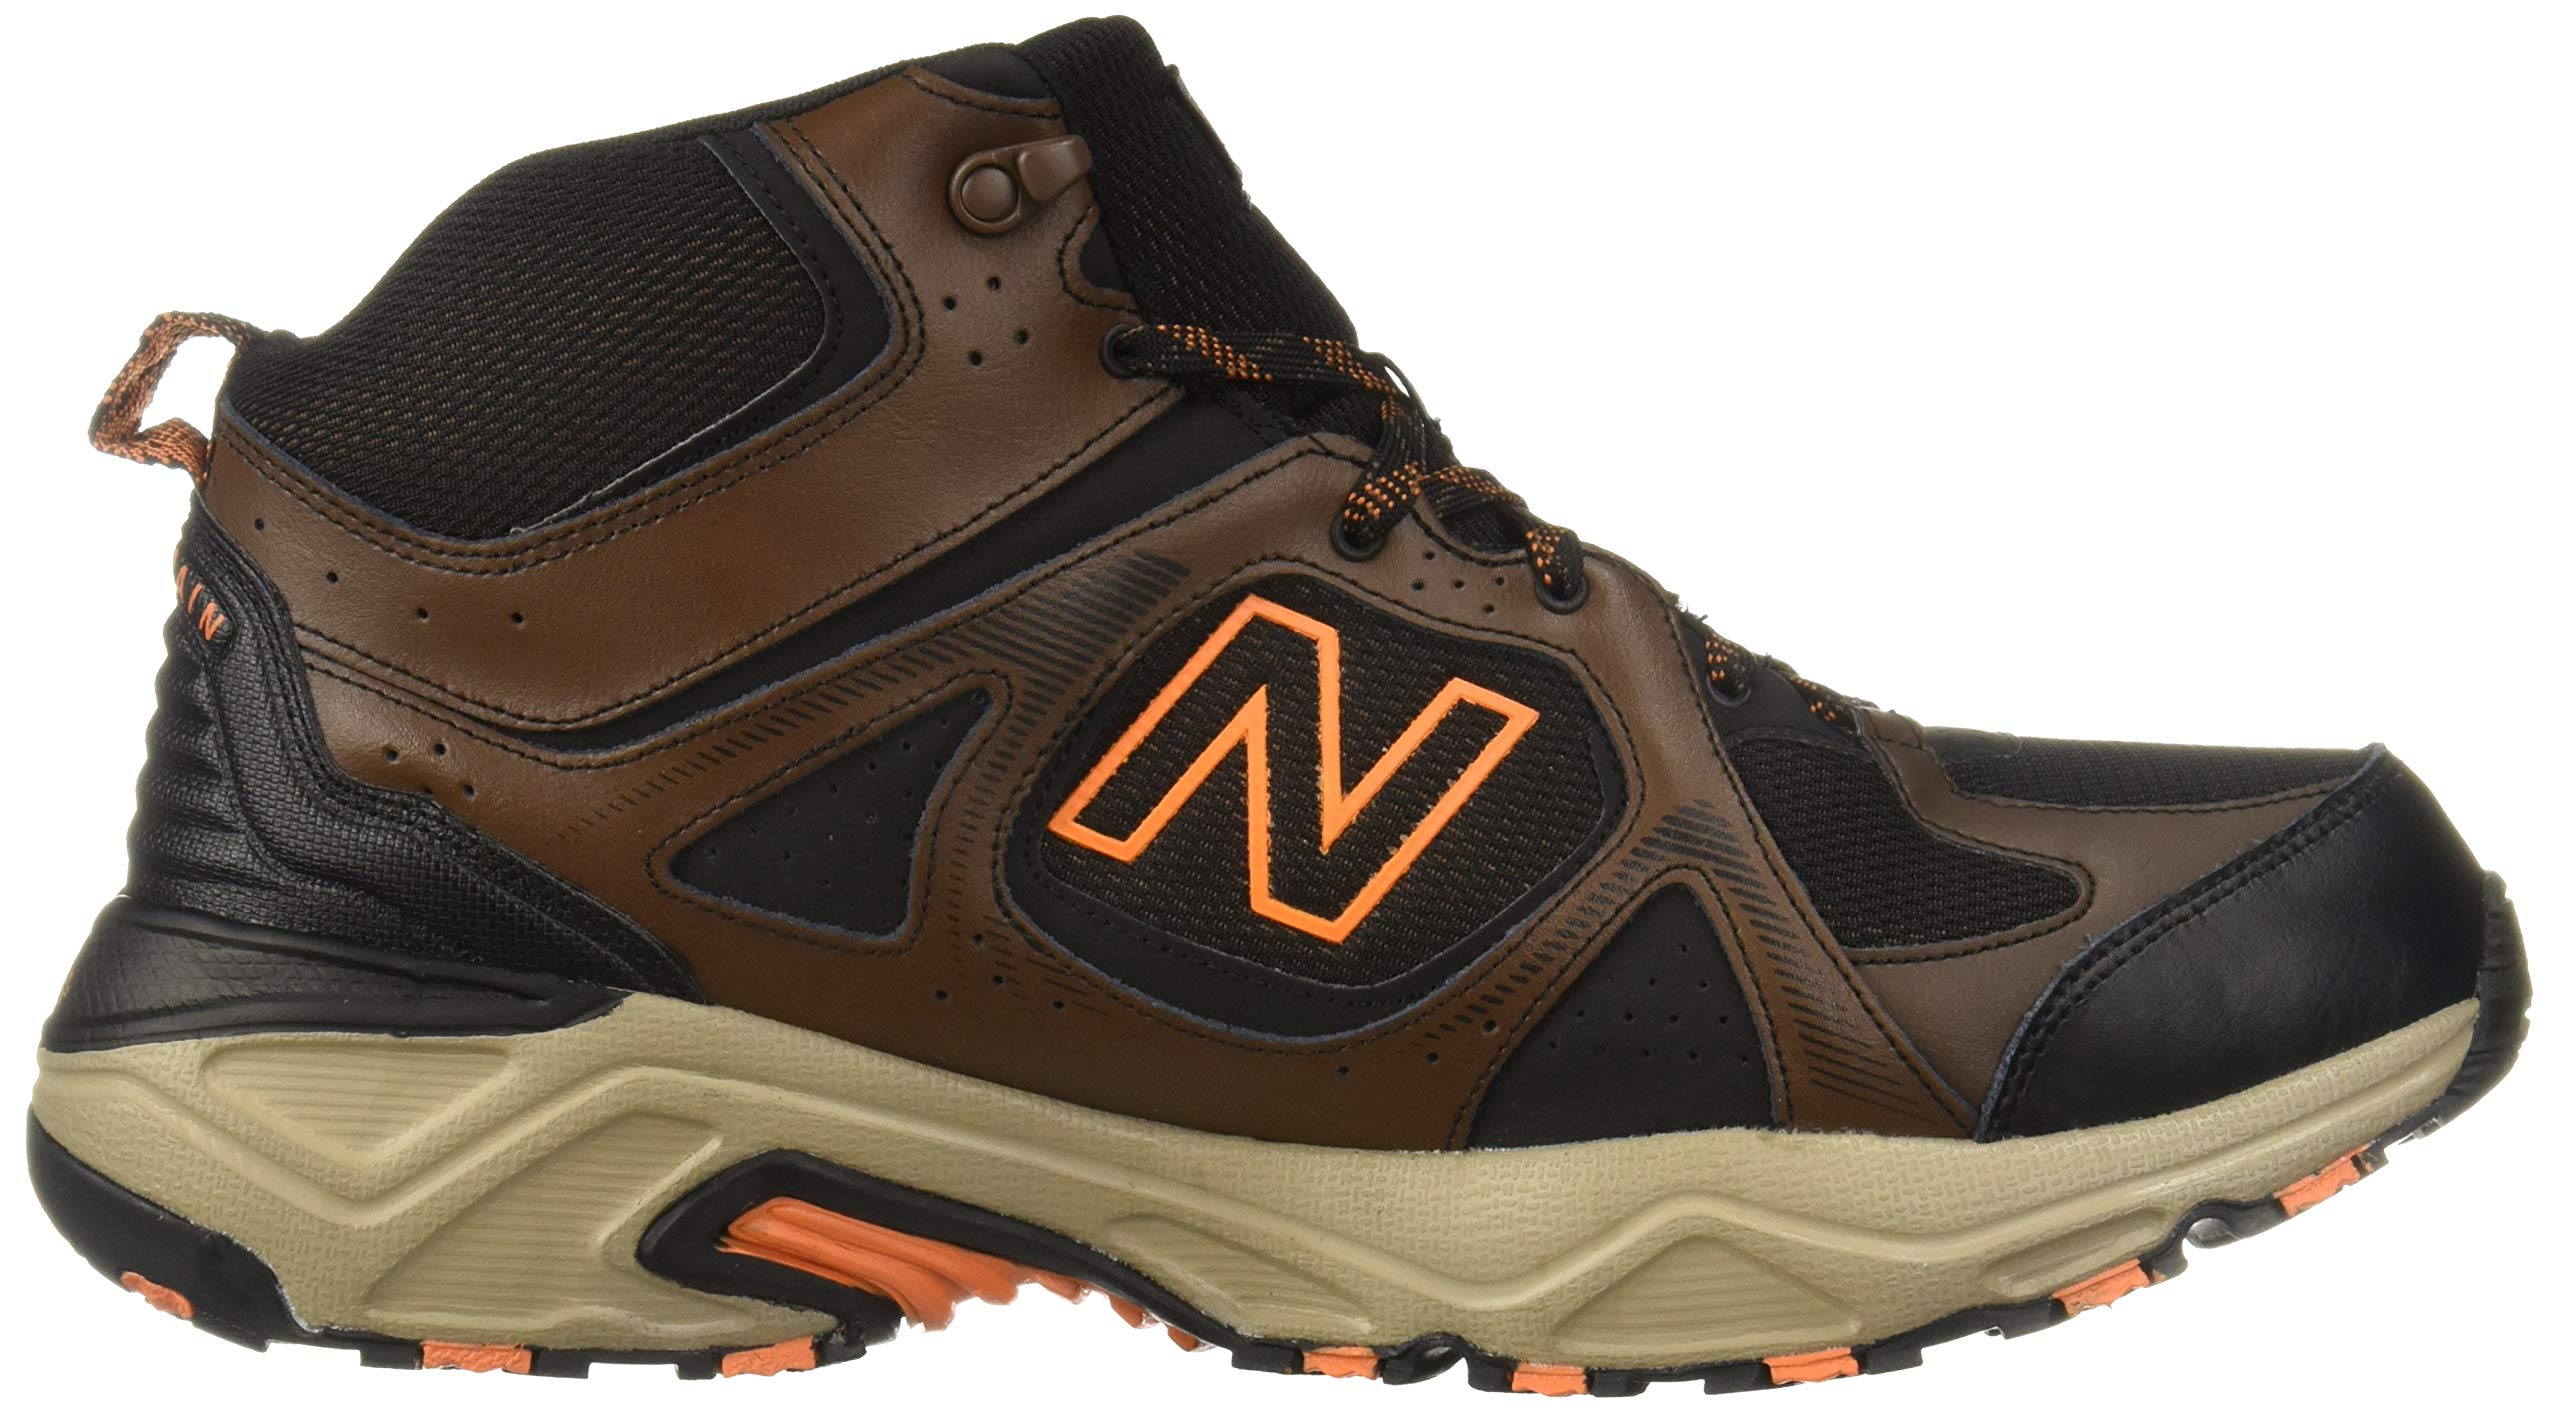 New Balance Men's 481 V3 Cushioning Trail Running Shoe Adrift/Black/Mercury 9 D US by New Balance (Image #7)